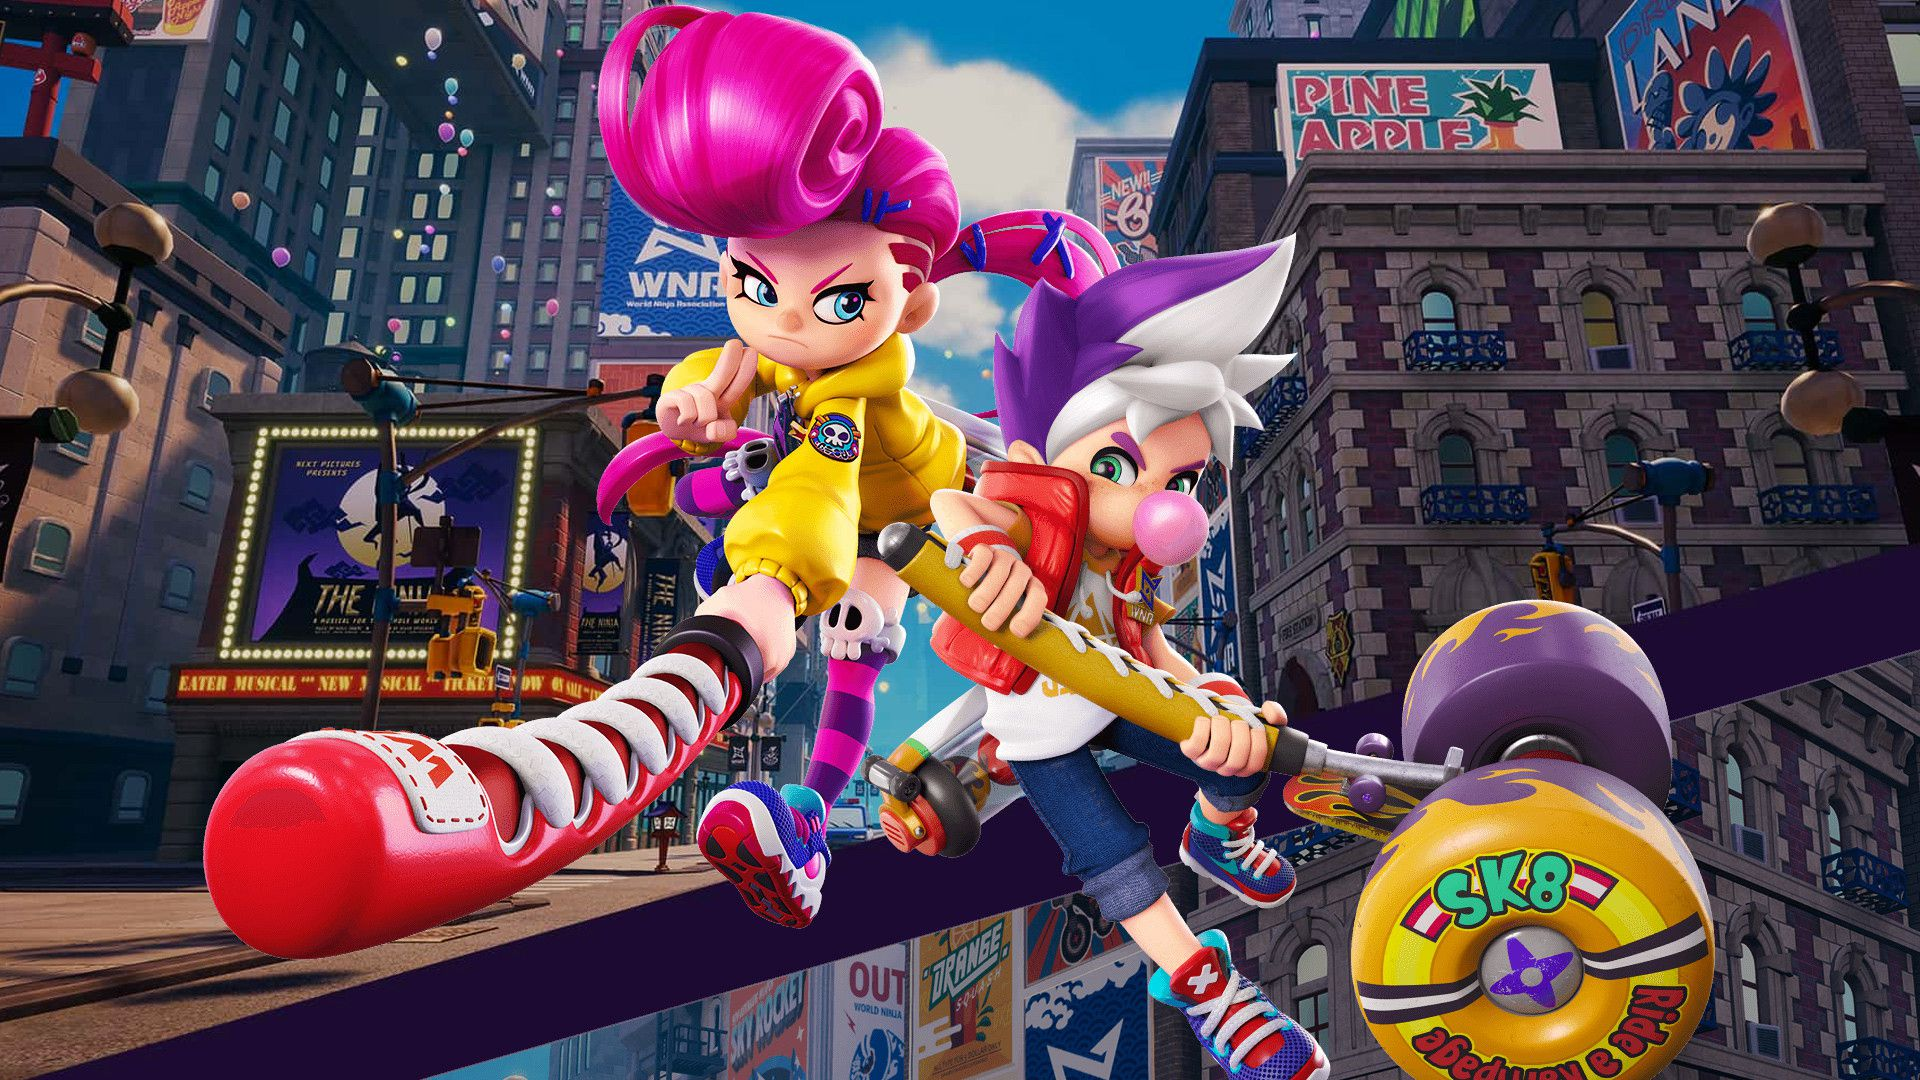 Ninjala for Nintendo Switch postponed, will not be released in May